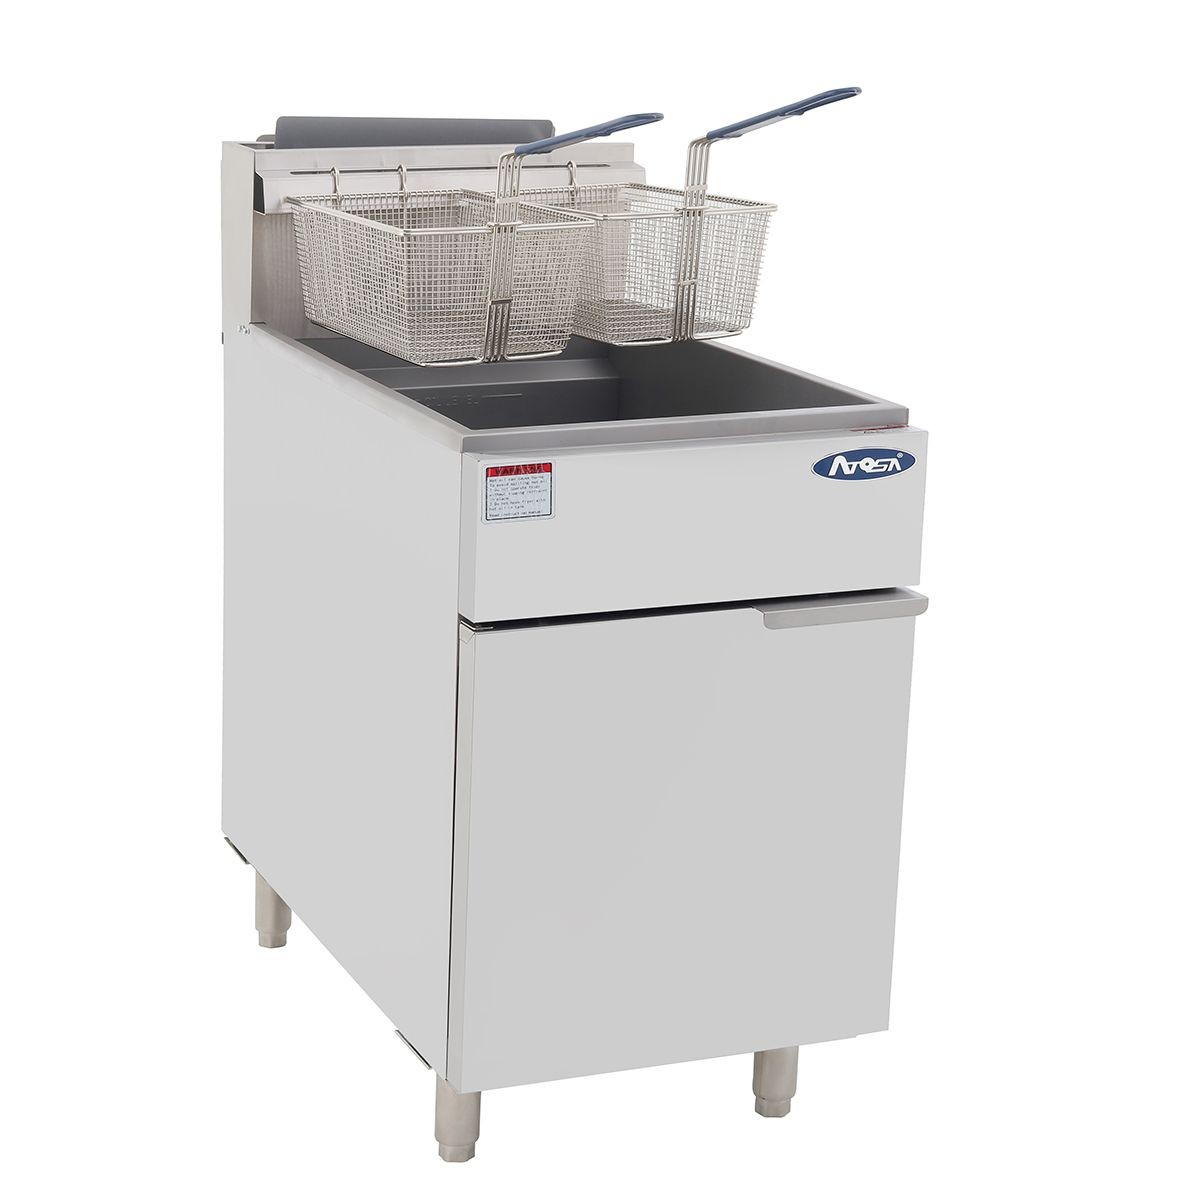 Atosa ATFS-75 HD Heavy Duty 75 Lb. Stainless Steel Deep Fryer